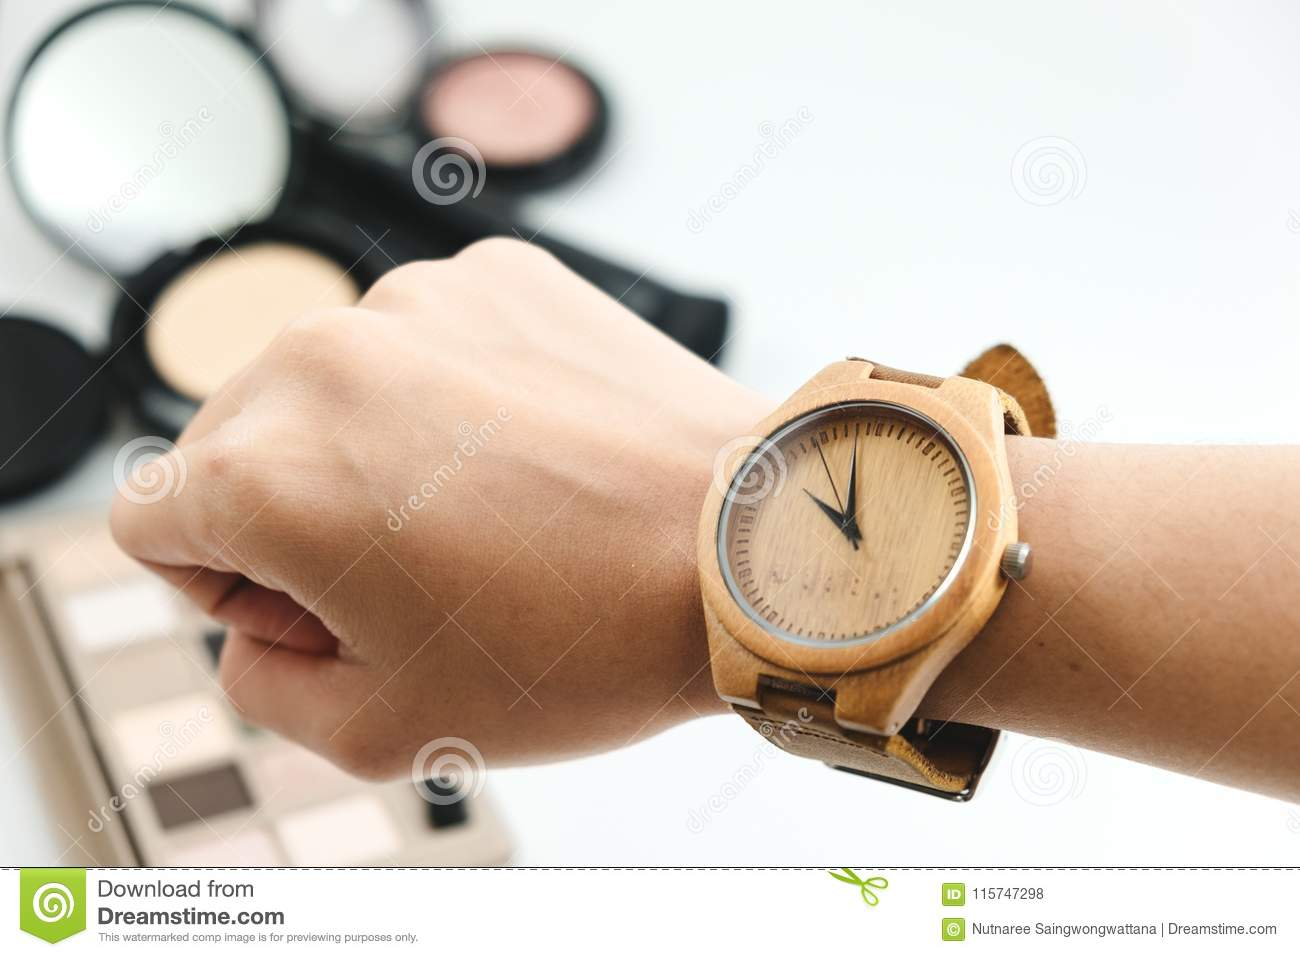 isolated hand of woman wearing wooden watch with cosmetic product, powder, brush on white background. image for copy